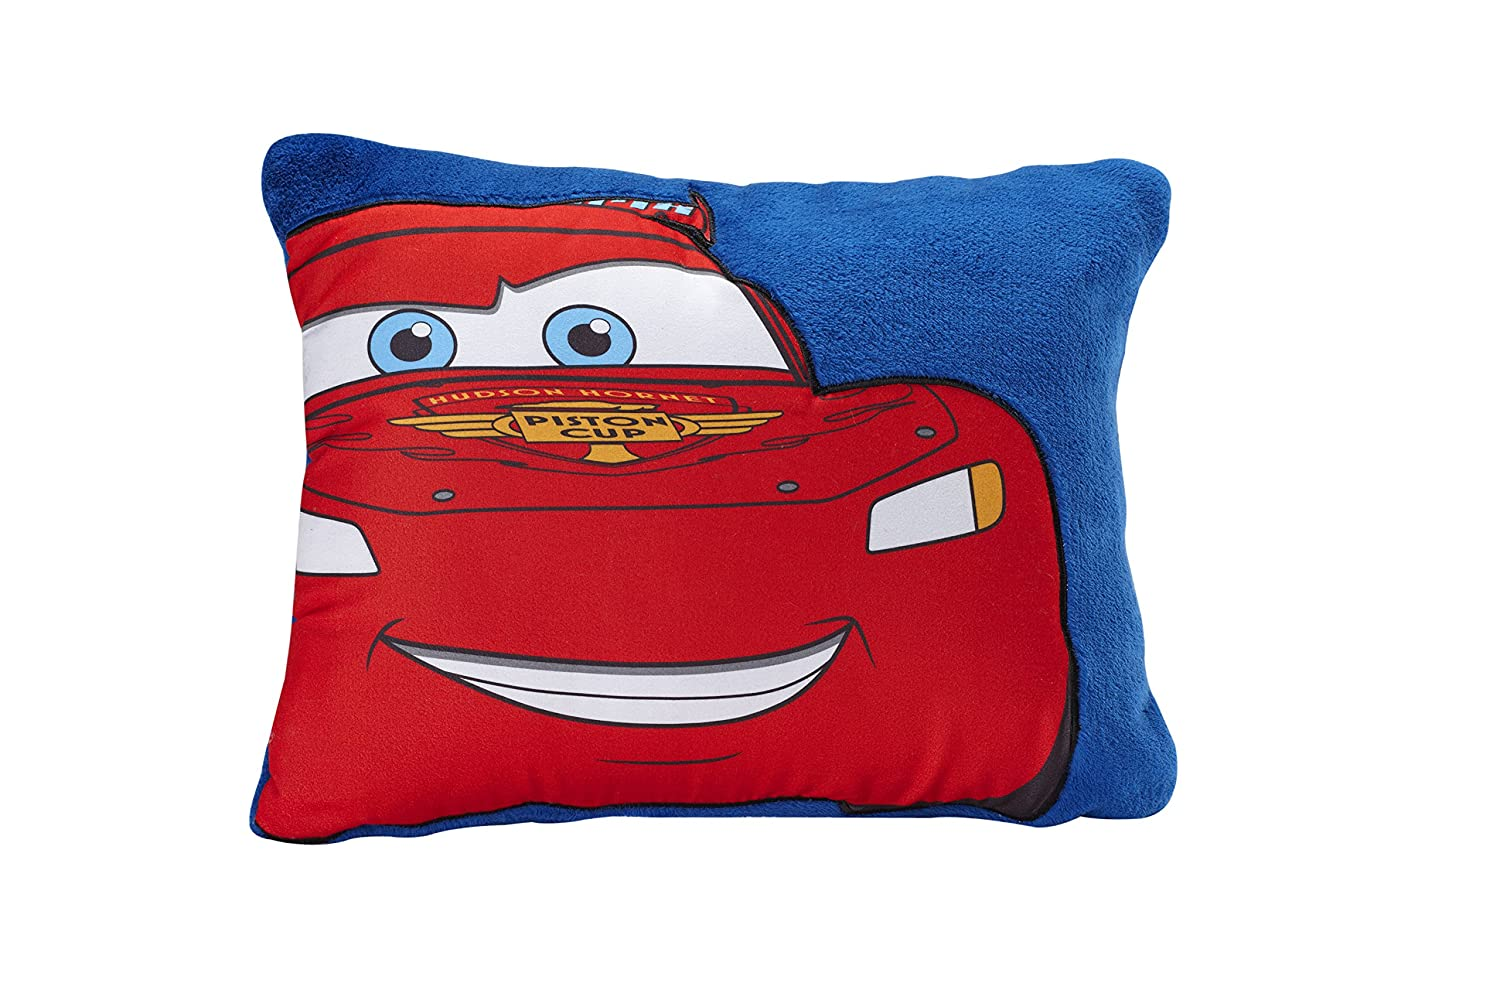 Disney Mickey Decorative Pillow, Red 5135713